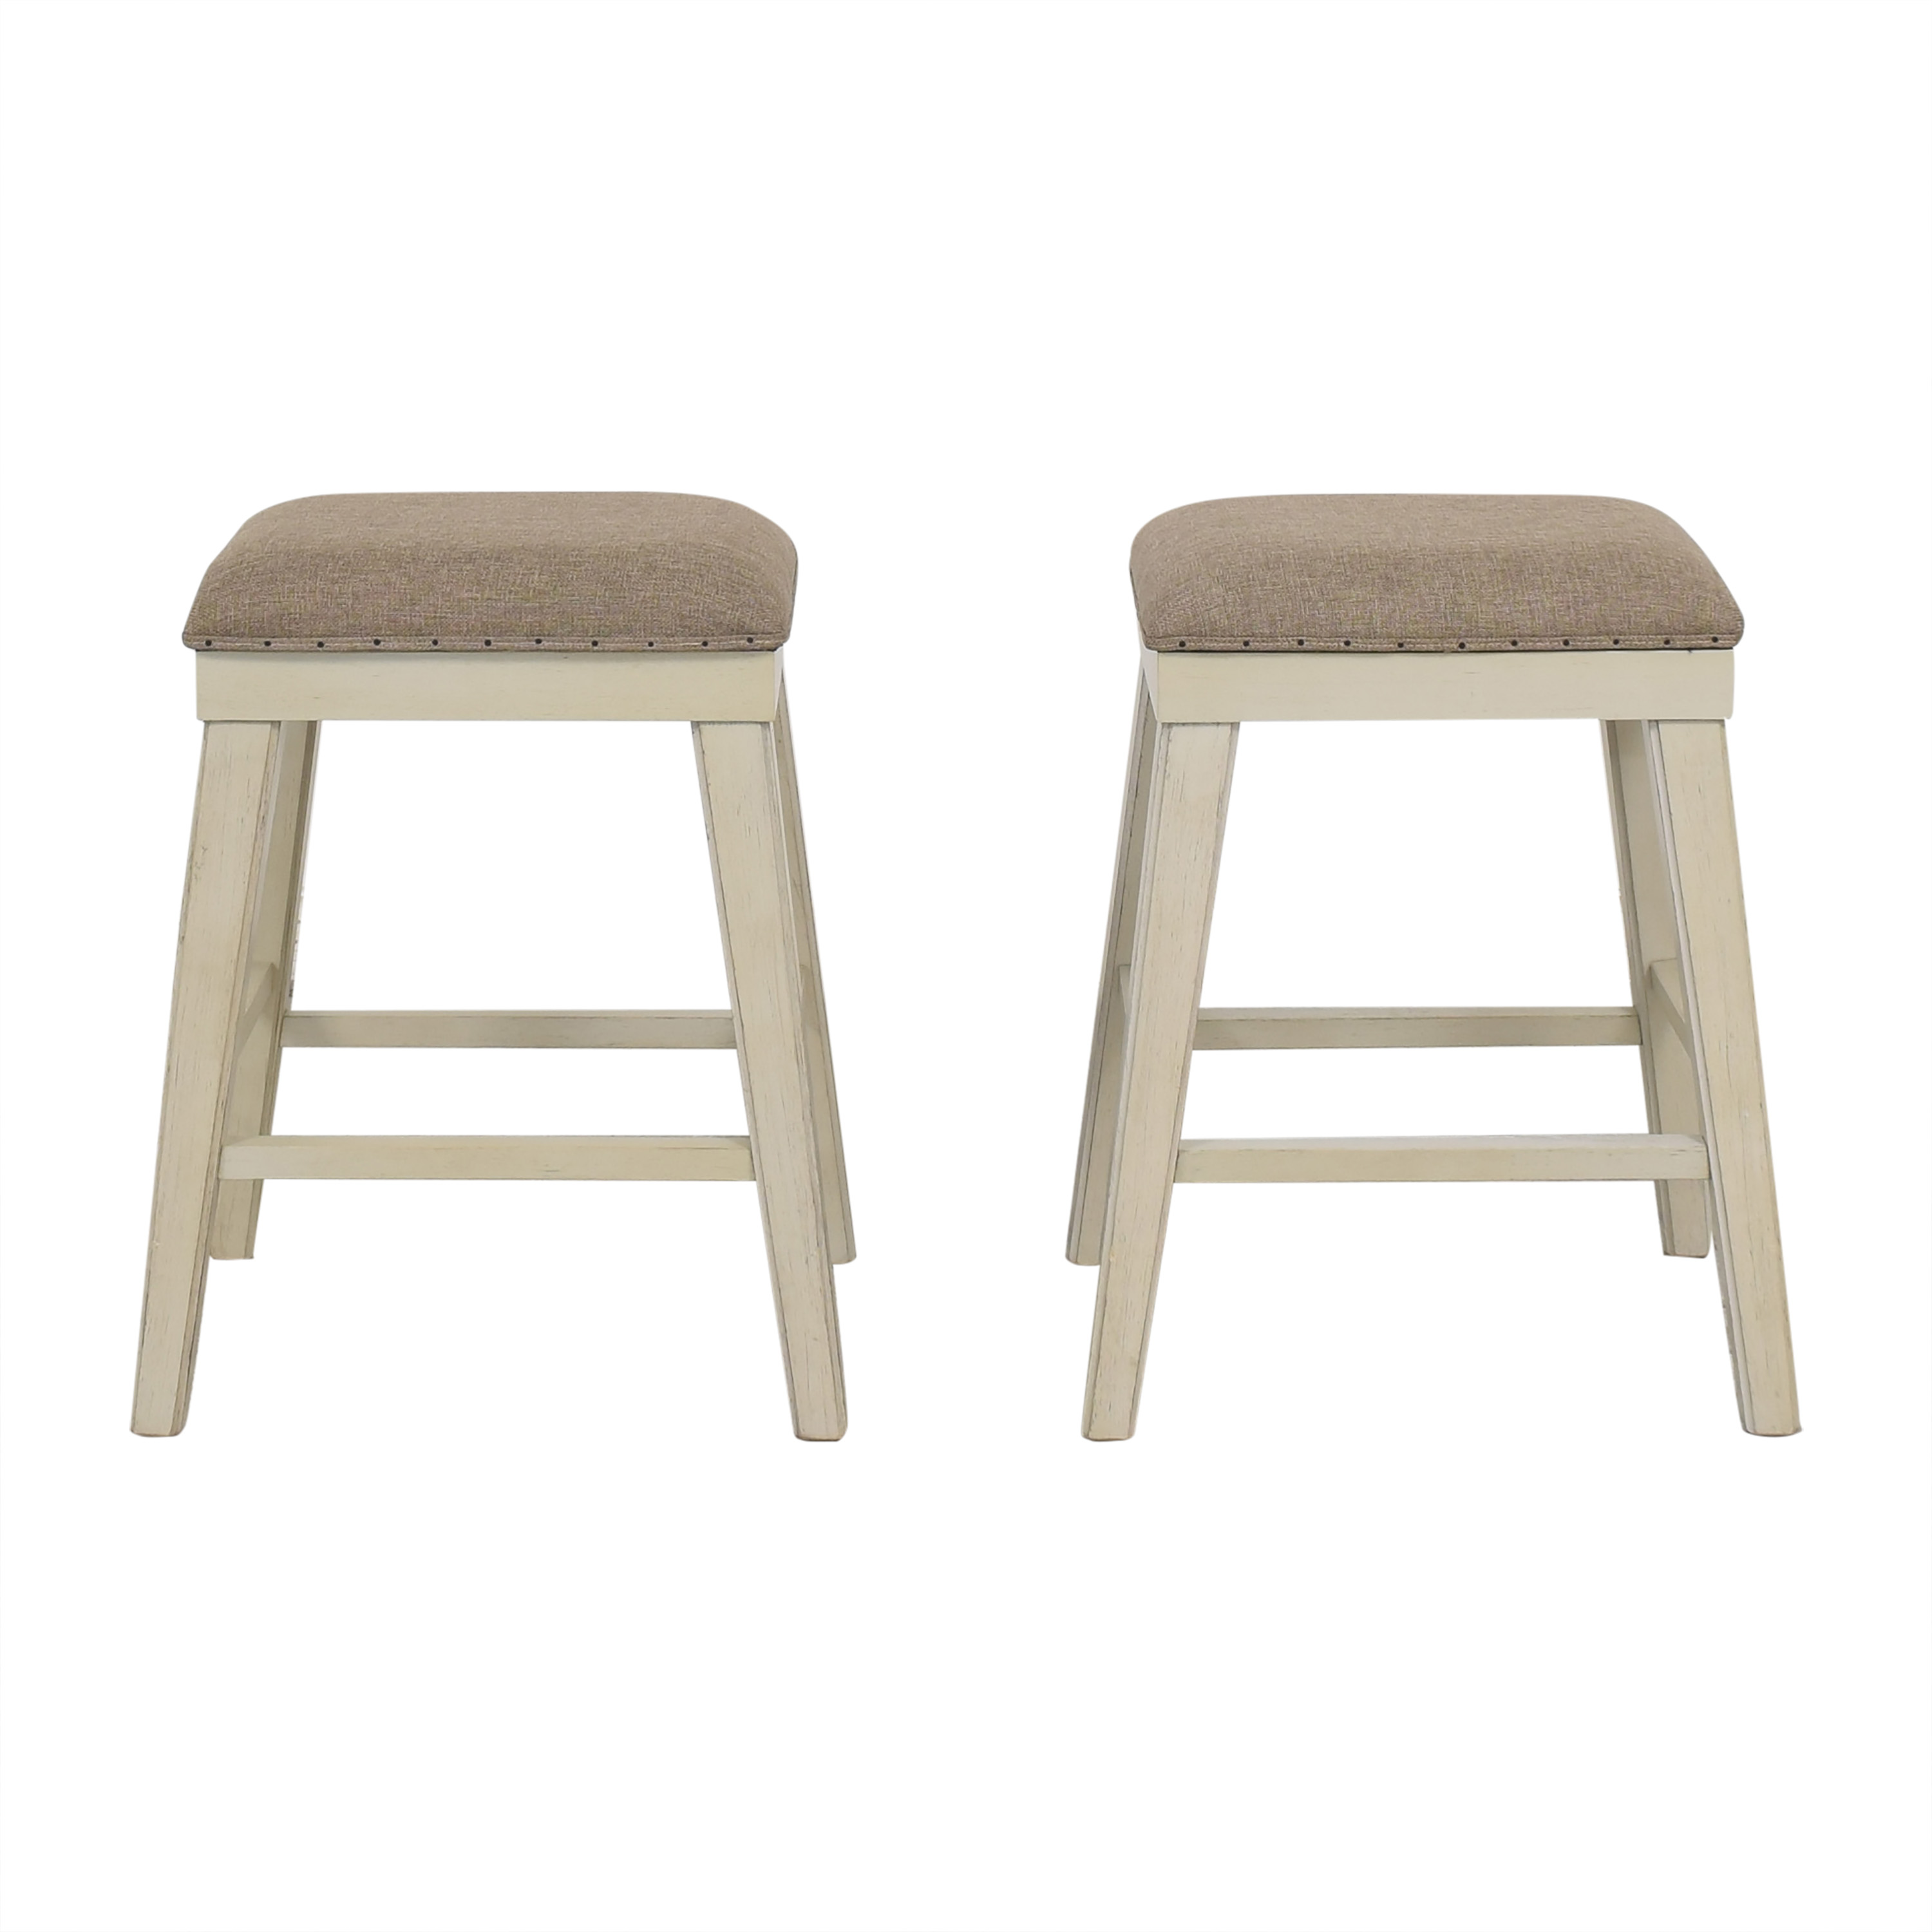 Peter Andrews Peter Andrews Mystic Backless Stools Stools